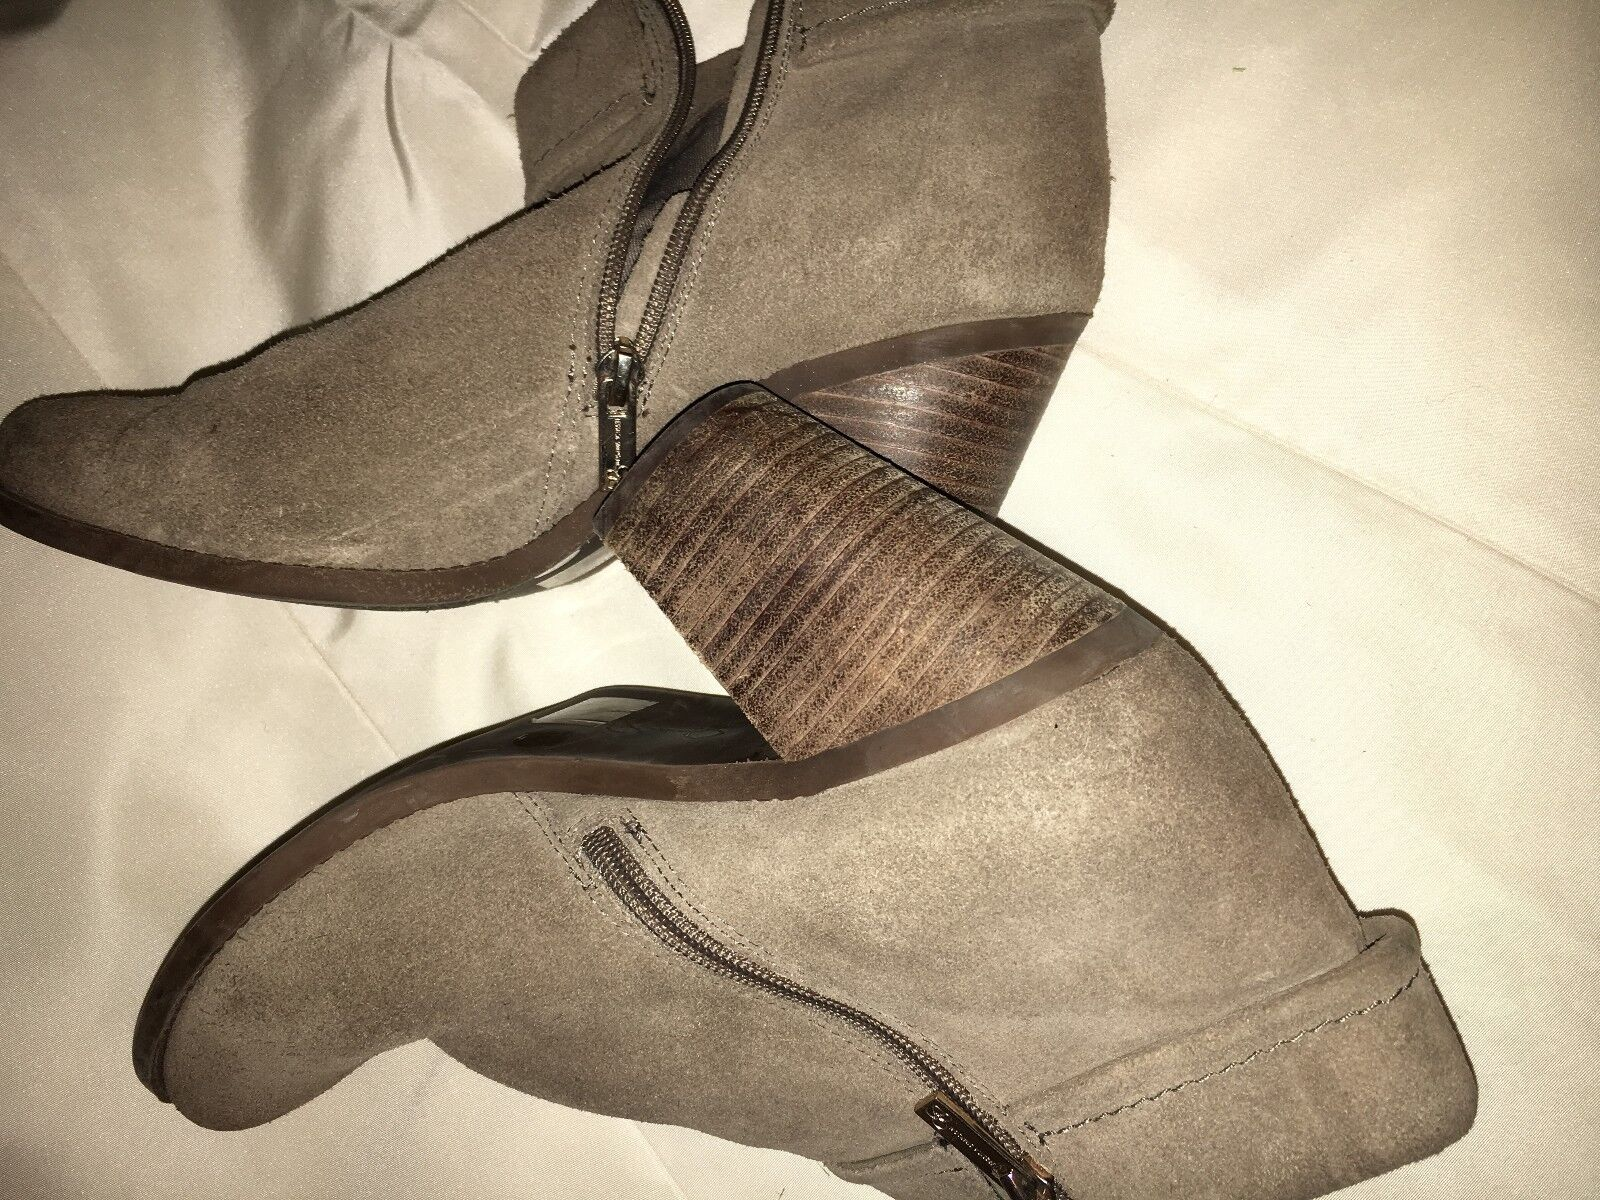 JESSICA SIMPSON NATURAL SUEDE FRAY WOMEN ANKLE BOOT SIZE 9.5M STYLISH WINTER